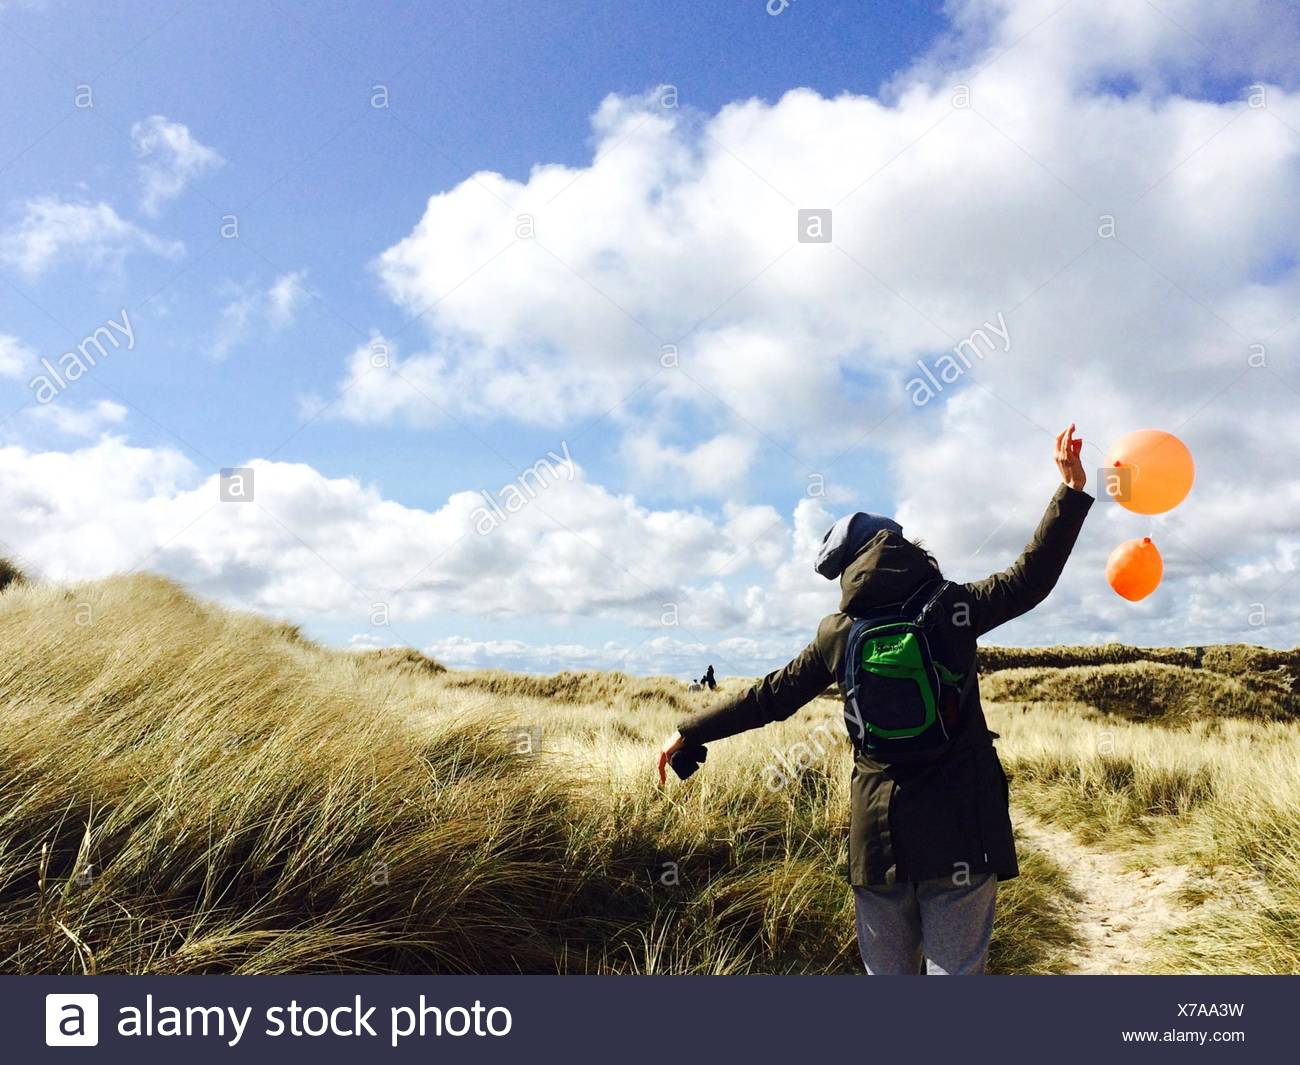 Rear View Of Girl Holding Orange Balloons On Field Against Cloudy Sky - Stock Image